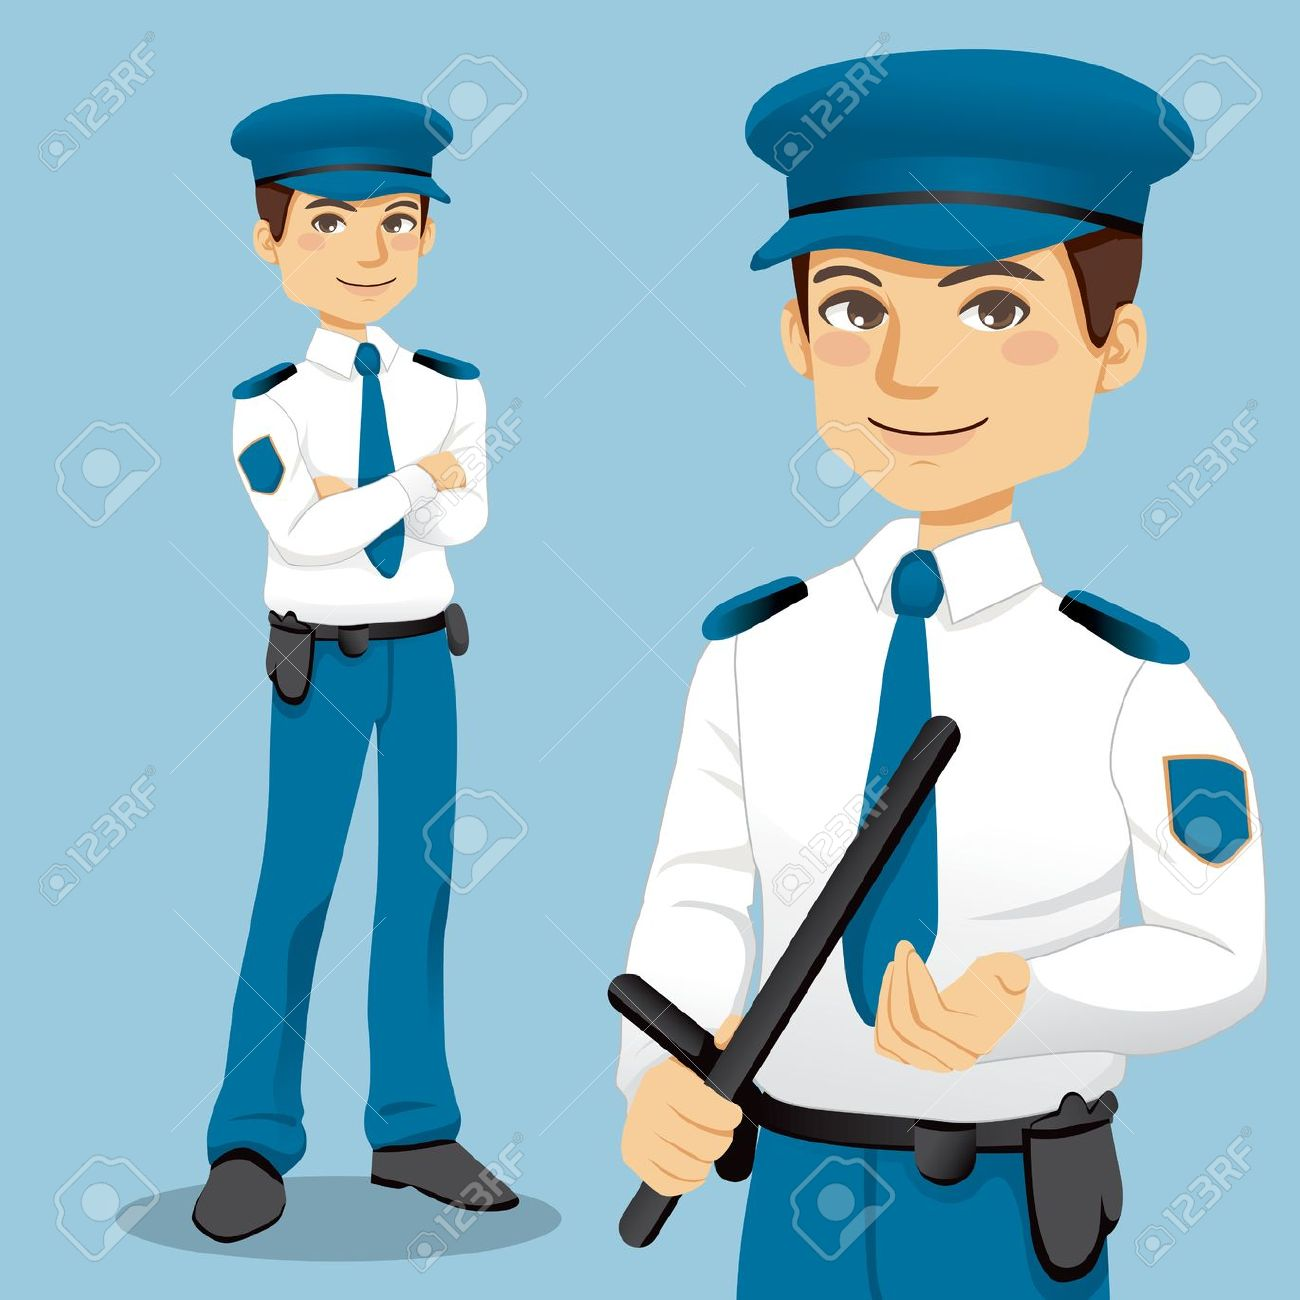 Clipart of security guard clipart free library Security officer clipart - ClipartFest clipart free library